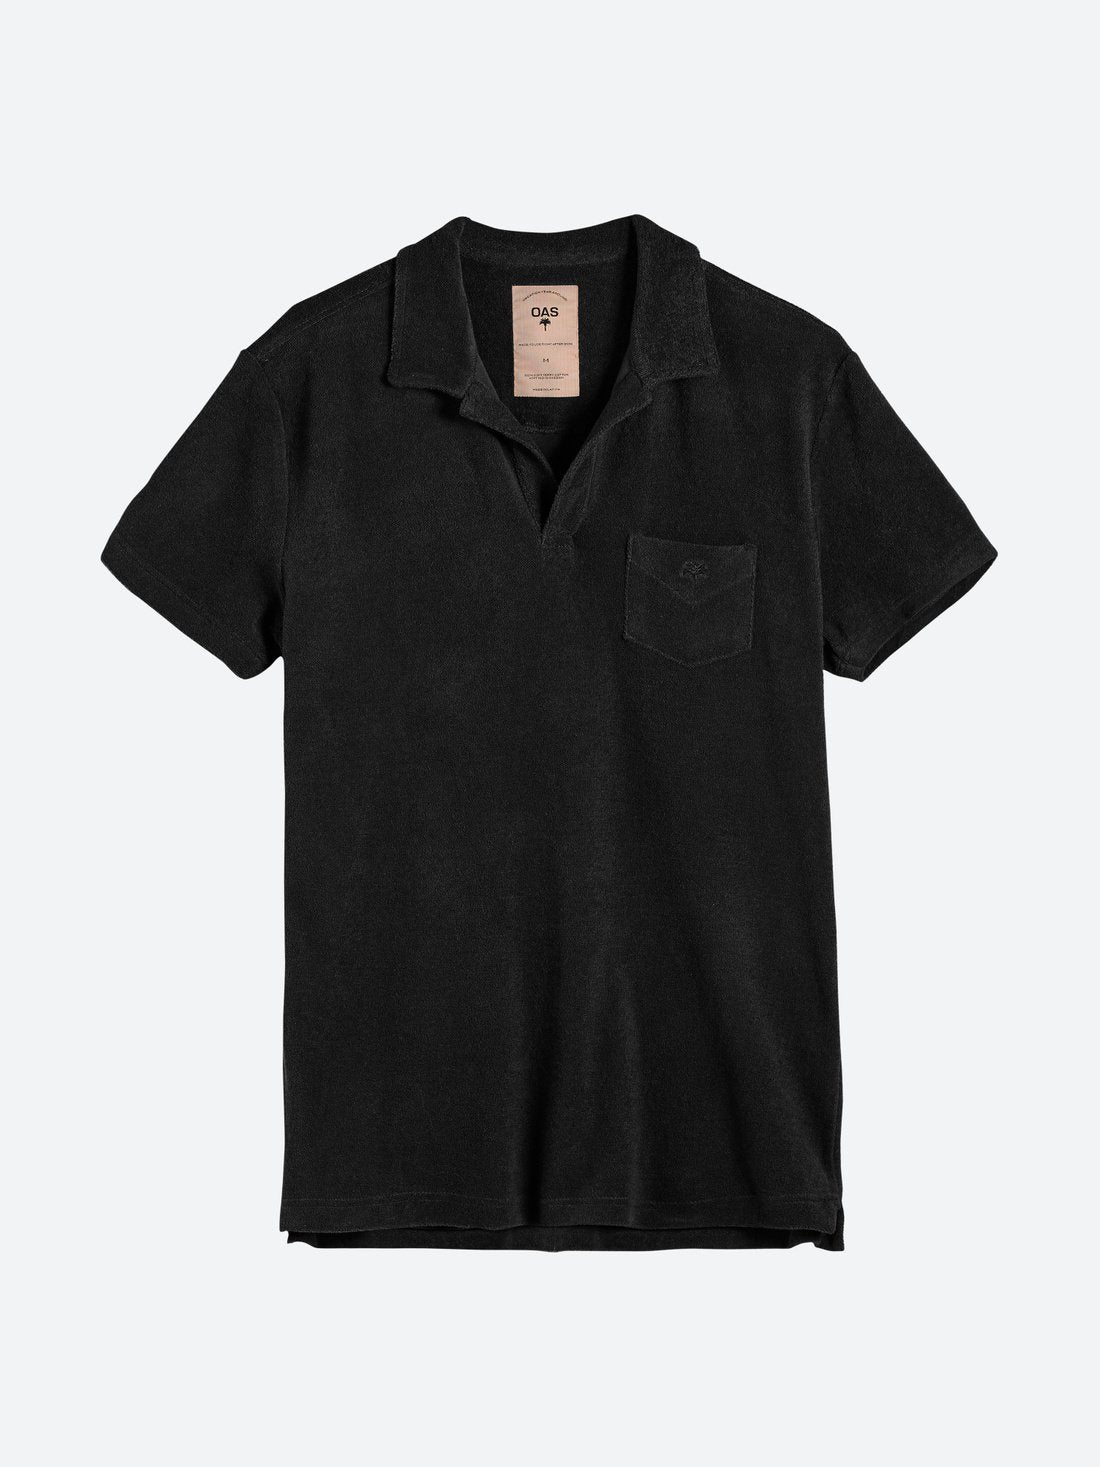 Oas Solid Black Terry Shirt - Mojo Independent Store